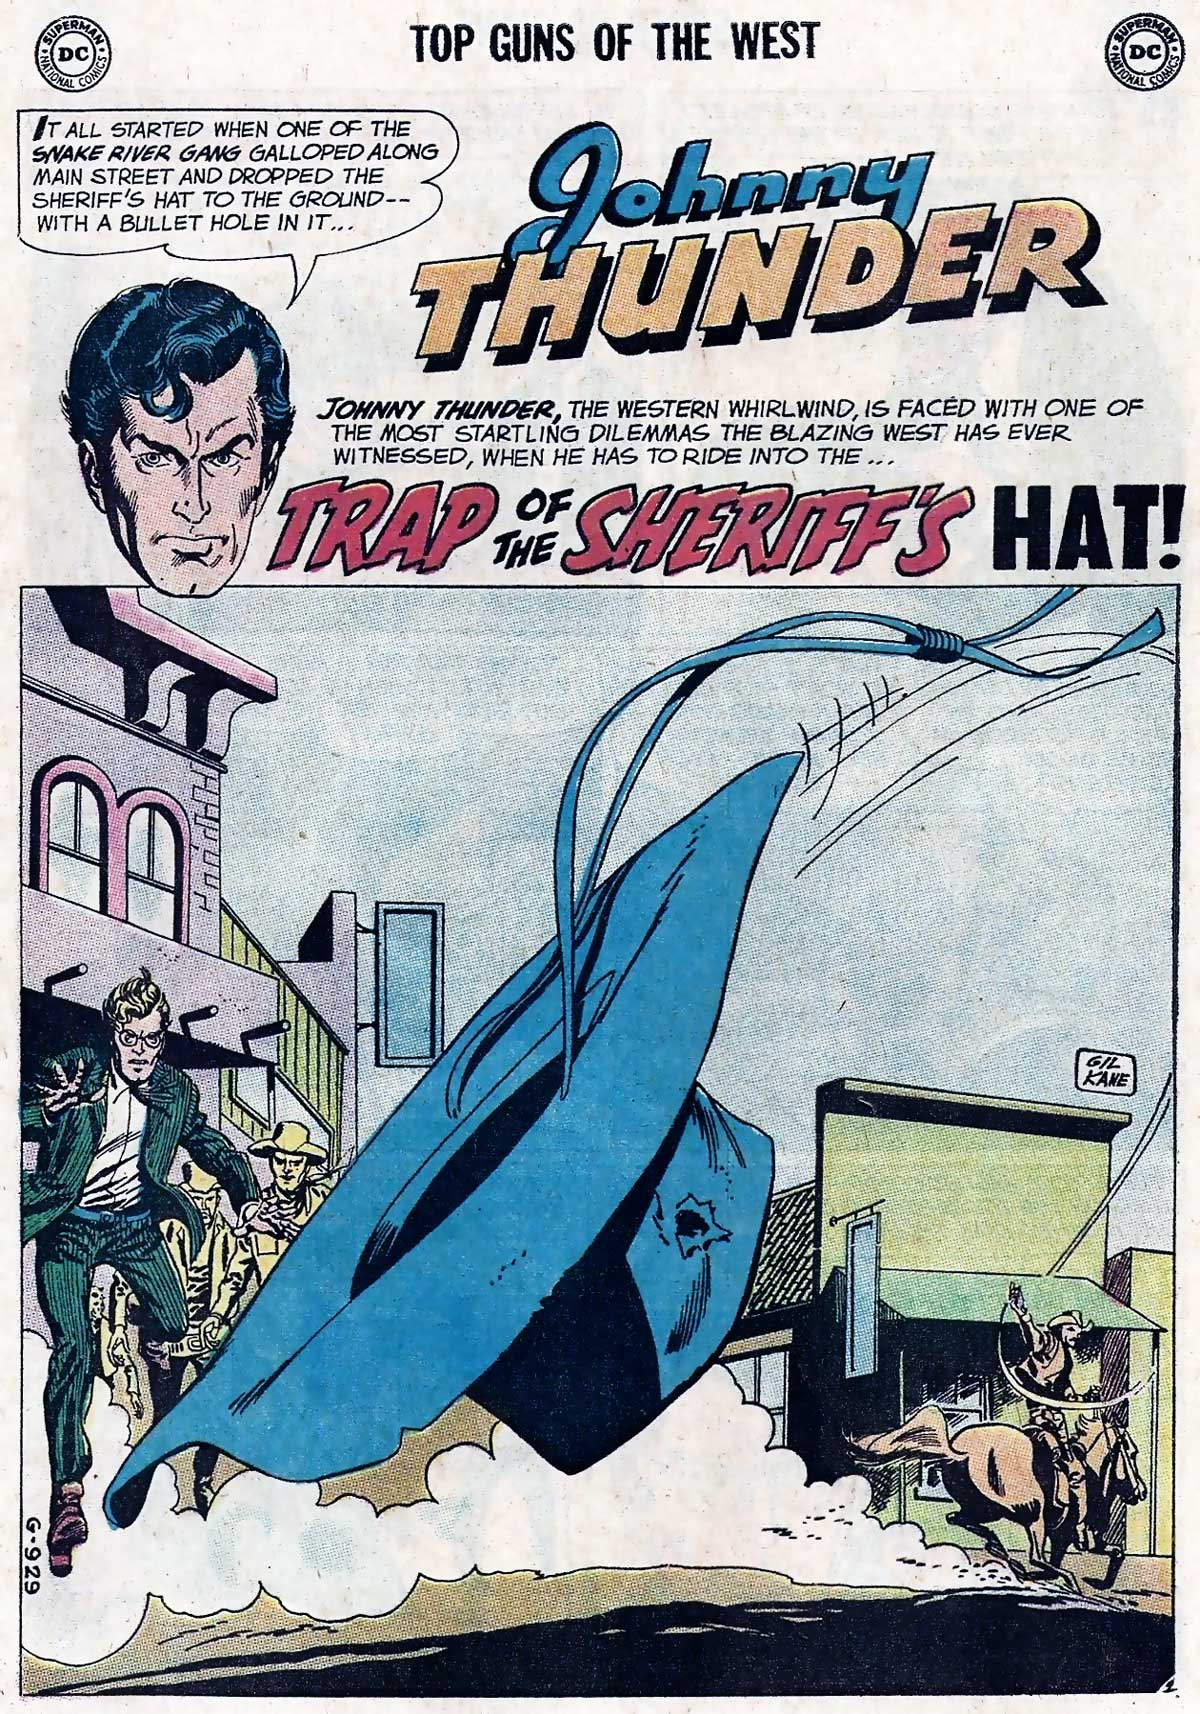 All-Star Western #99 featuring Johnny Thunder by Bob Haney and Gil Kane